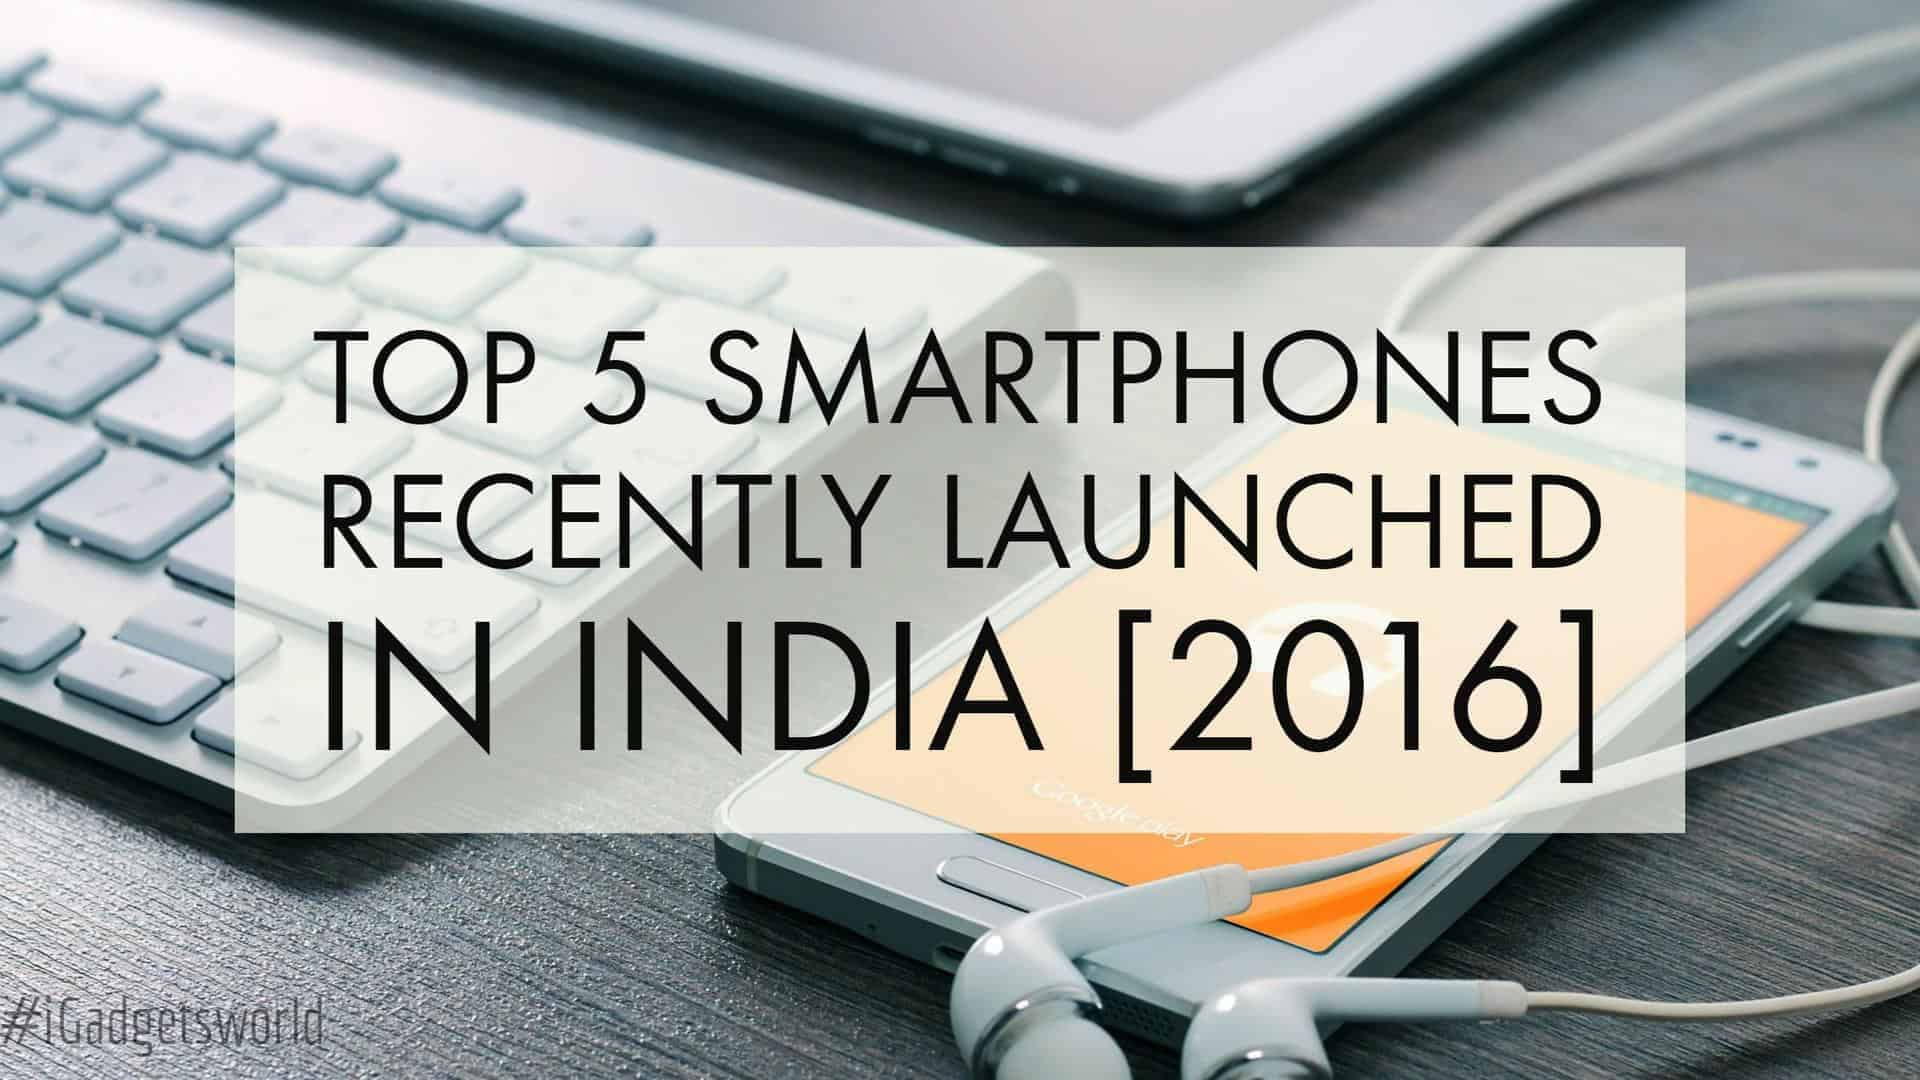 Top 5 Smartphones Recently Launched In India [June-July 2016] - 1